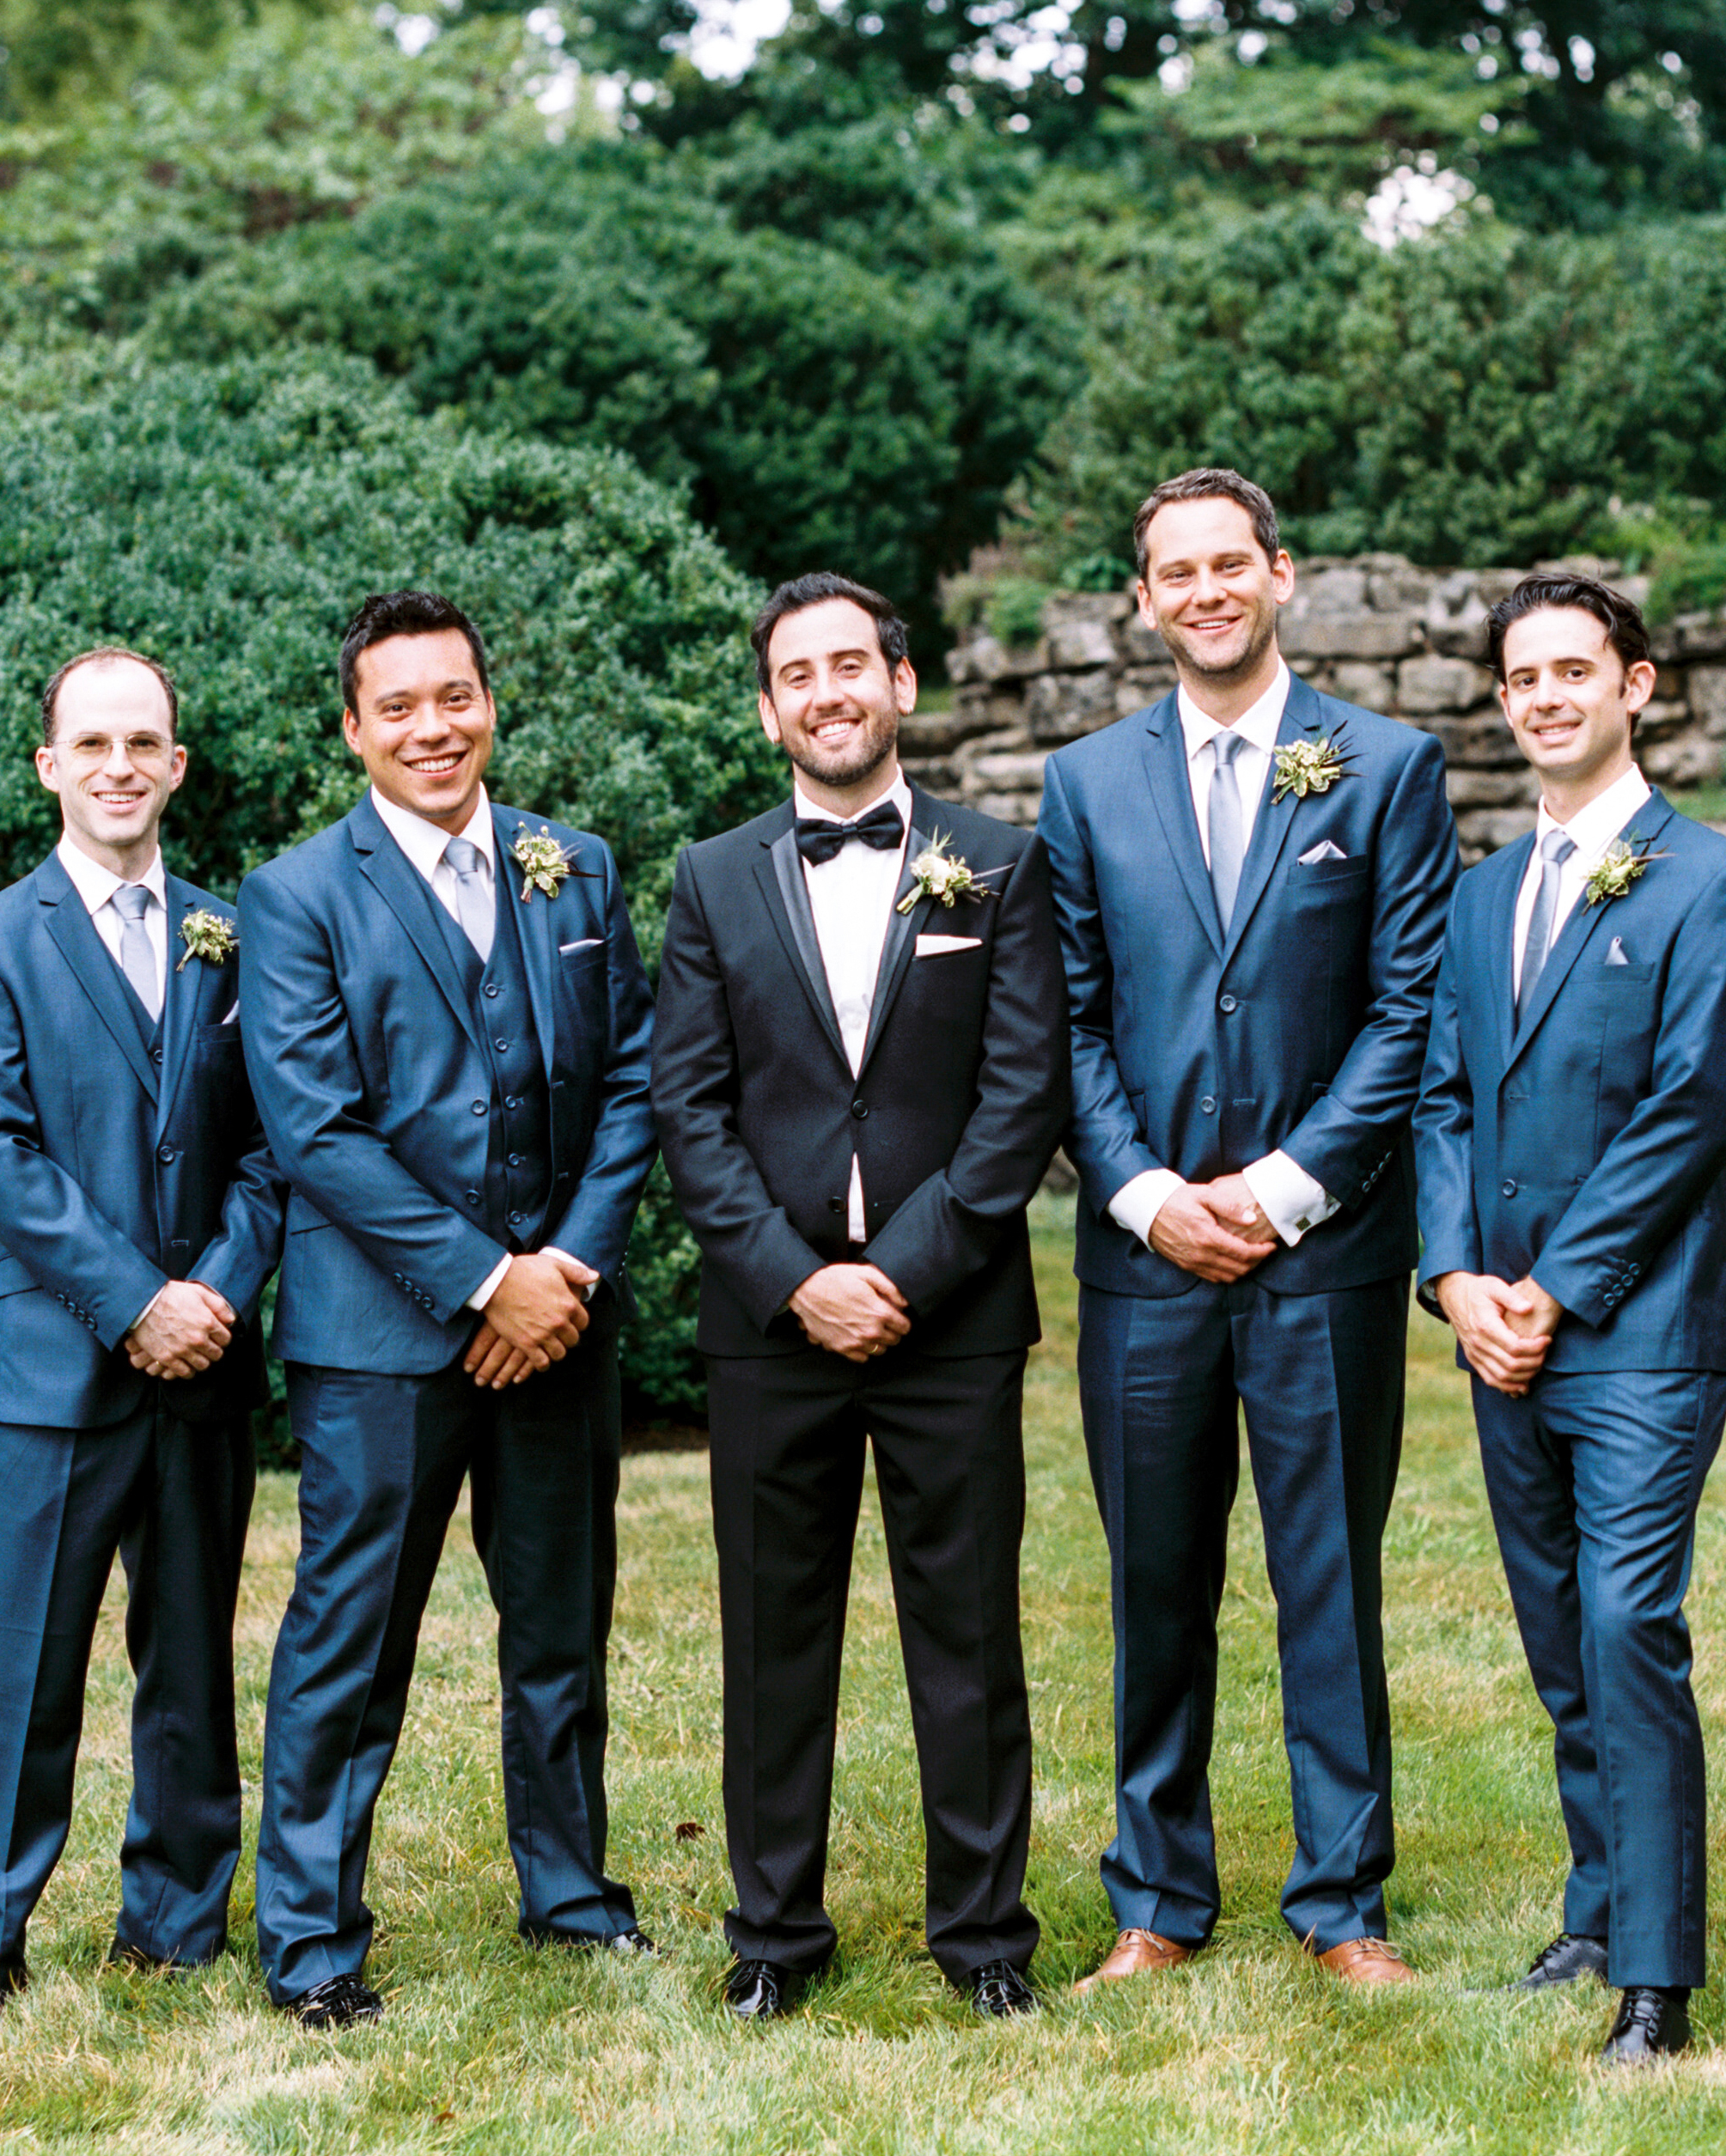 jackie-ross-wedding-groomsmen-039-s111775-0215.jpg